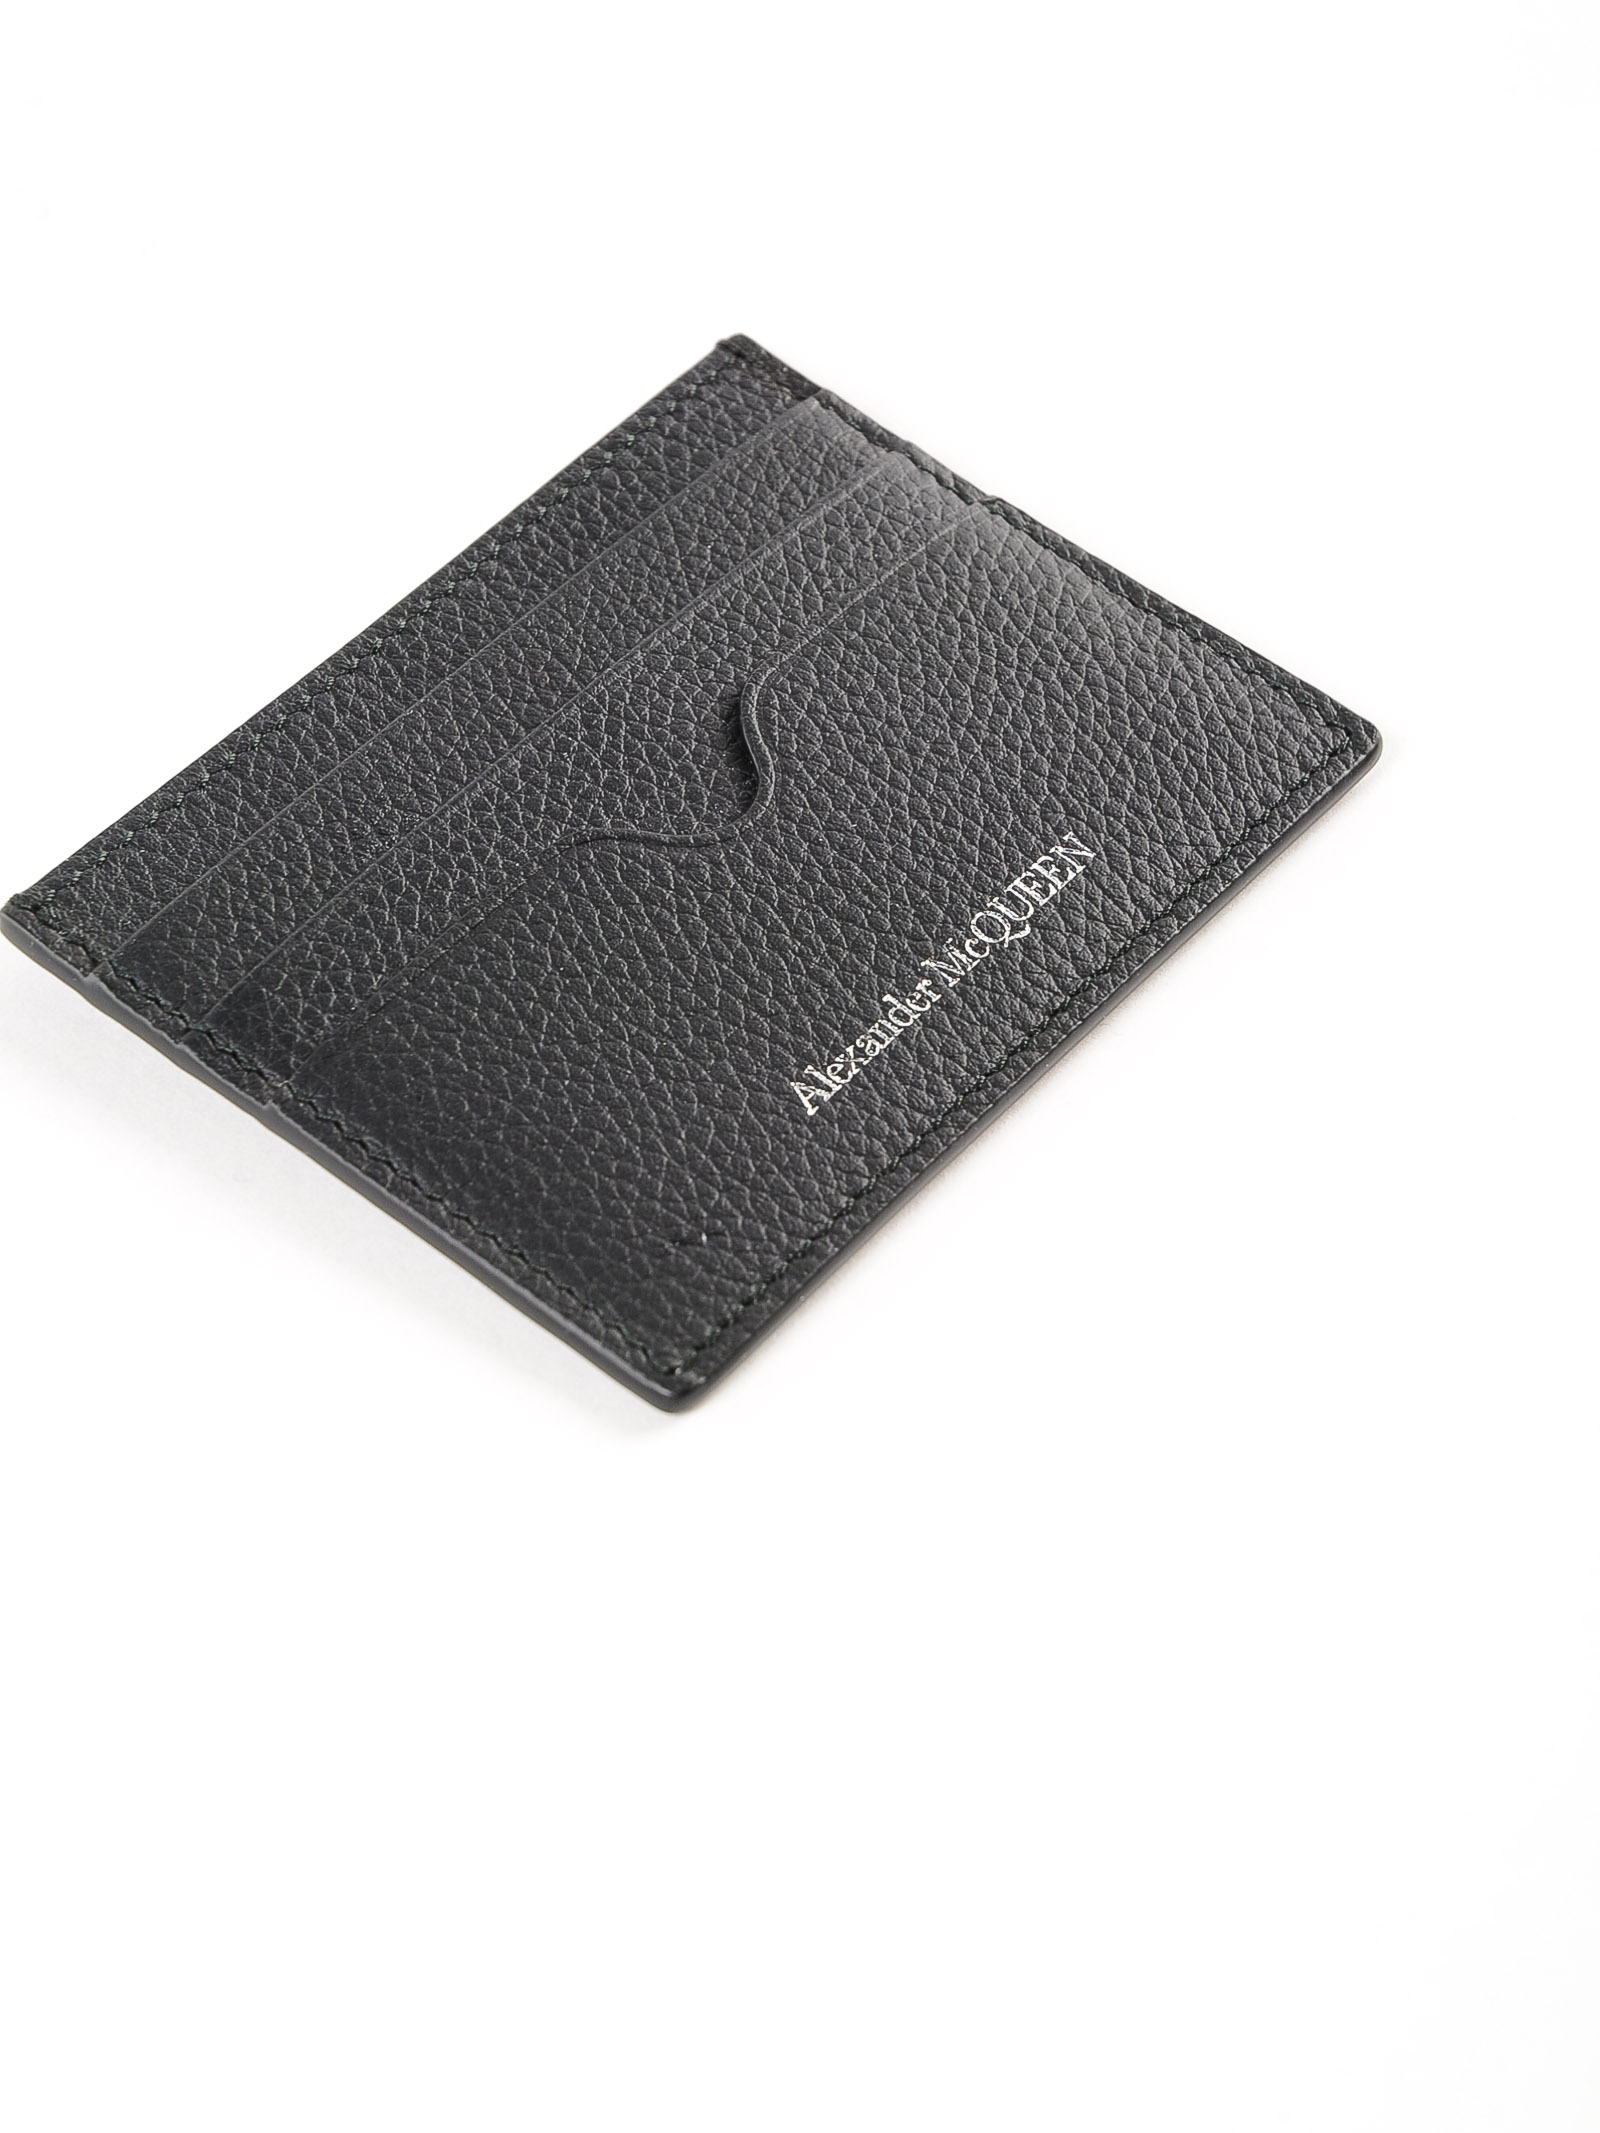 Picture of Alexander Mcqueen | Card Case